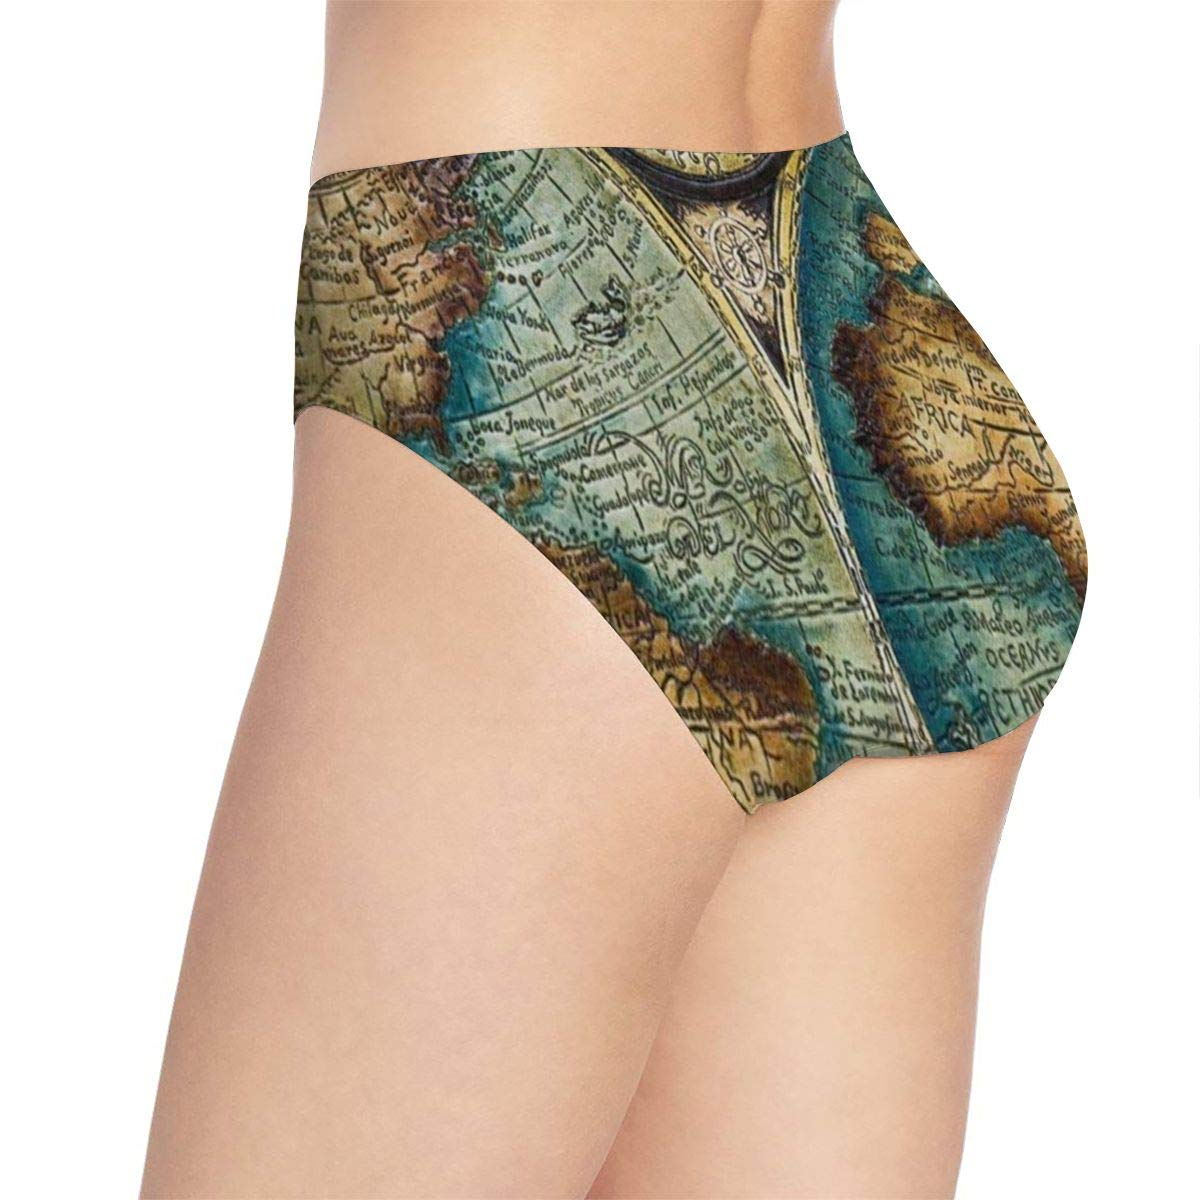 Womens Underwear Old World Map Art Seamless Panties Personalized Briefs for Lady//Girls